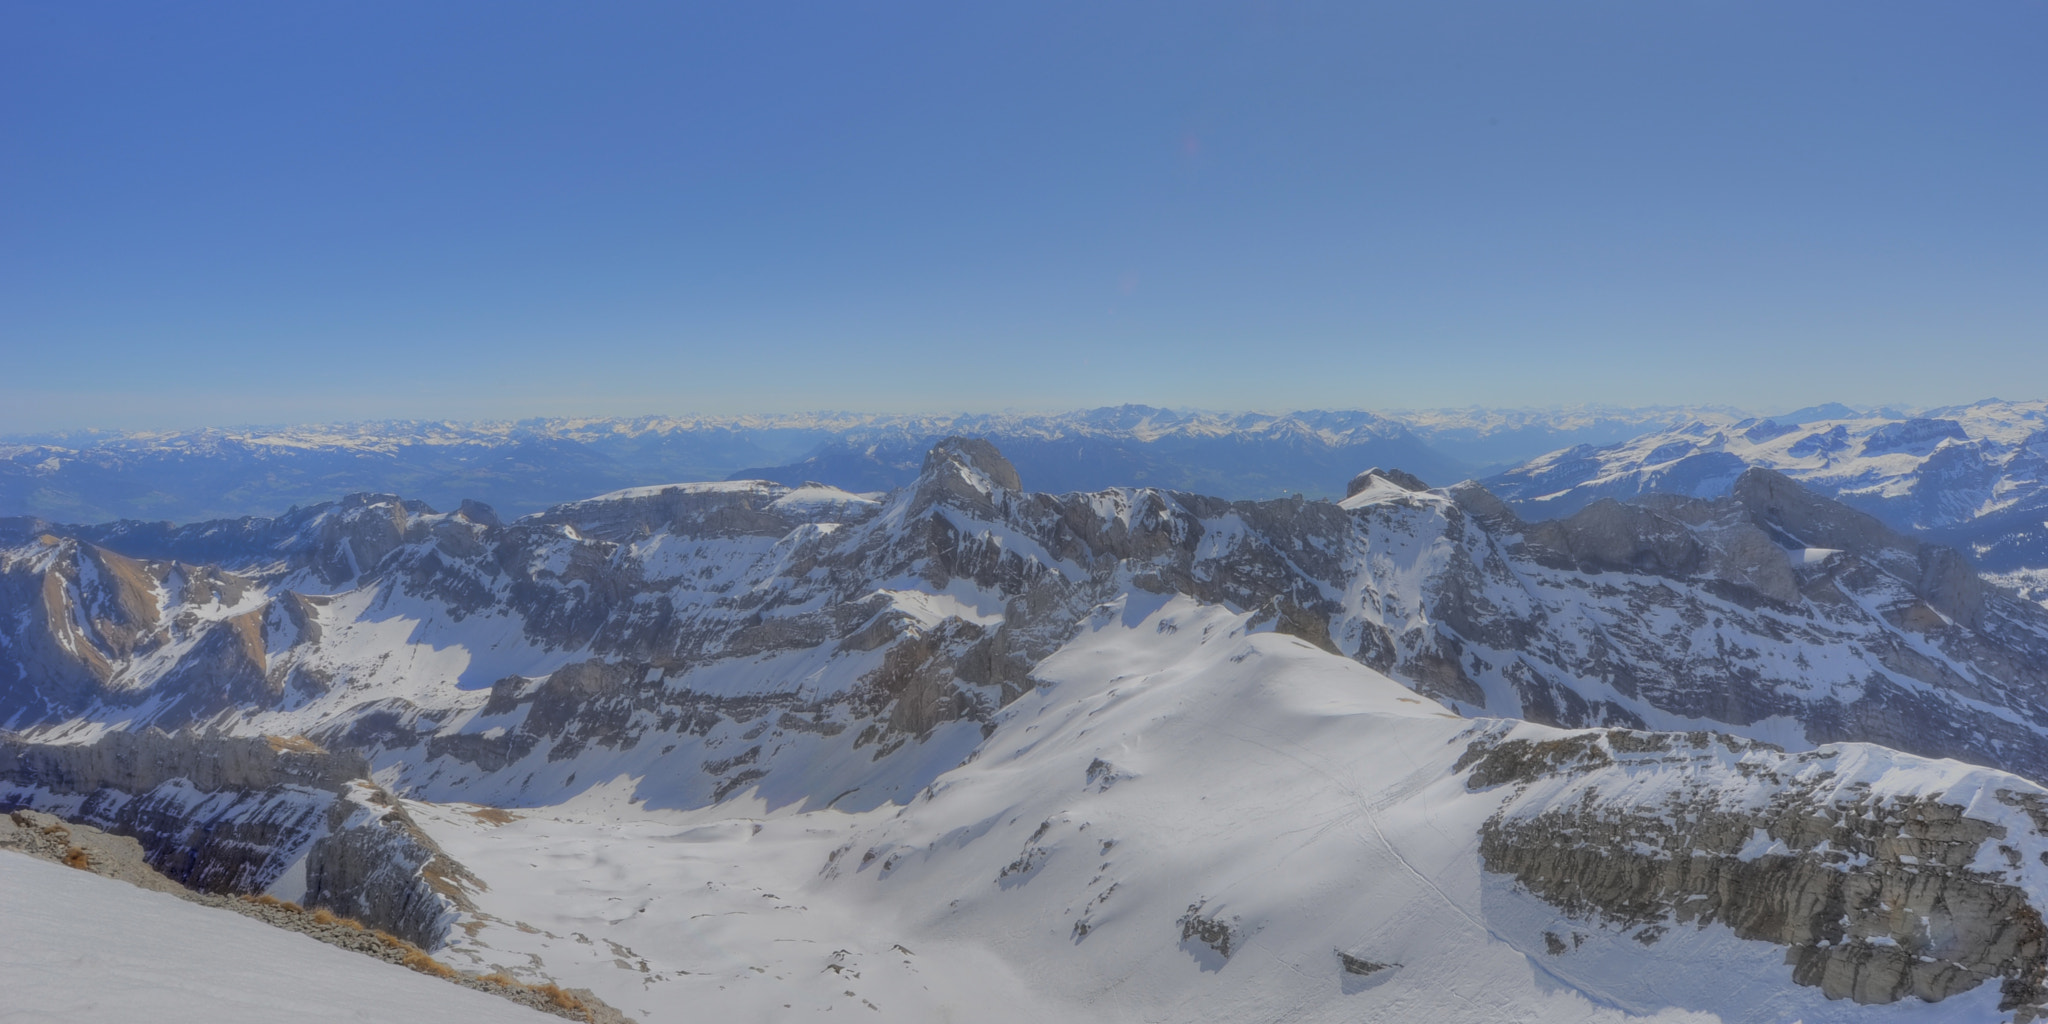 Photograph Panorama from Säntis by Daniel J Mueller on 500px